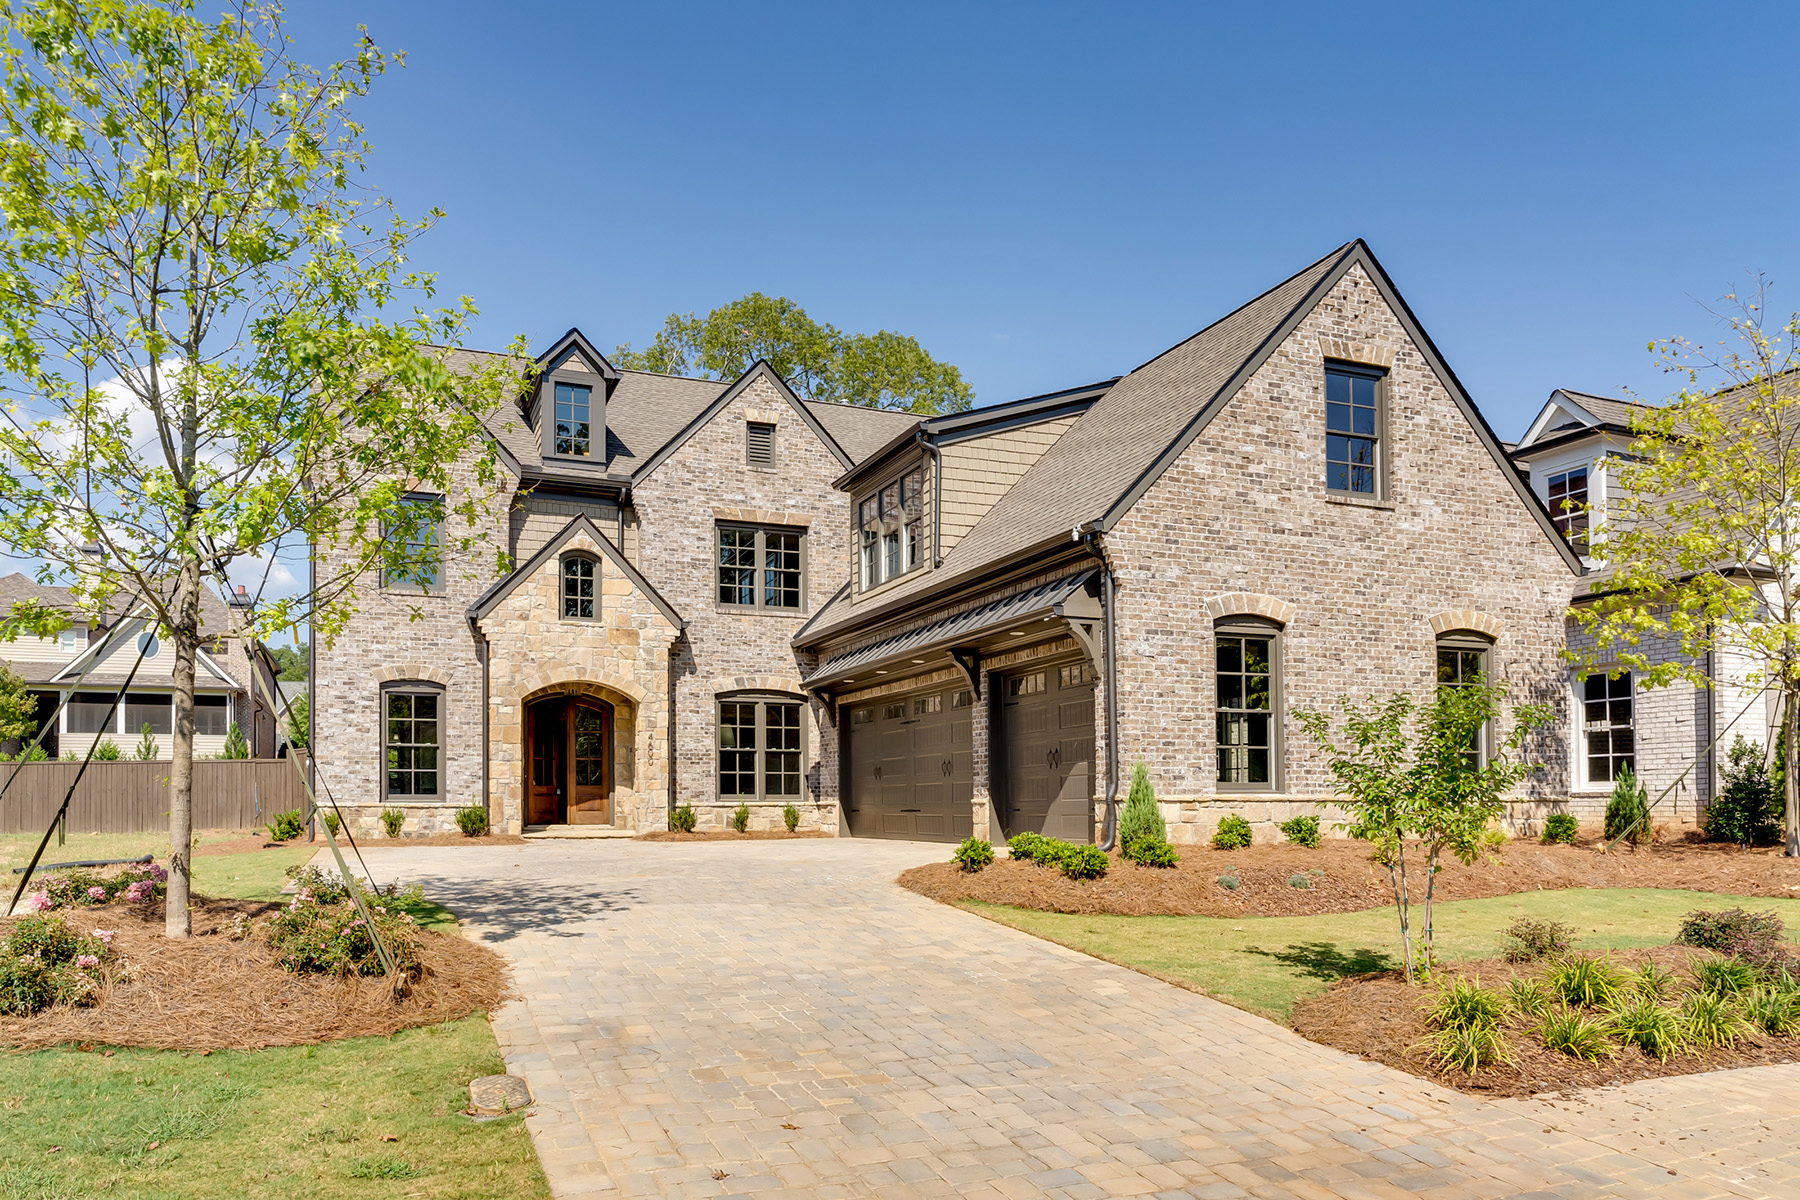 Single Family Homes for Active at Luxury New Construction In The Heart Of East Cobb 4600 Oakside Point Marietta, Georgia 30067 United States